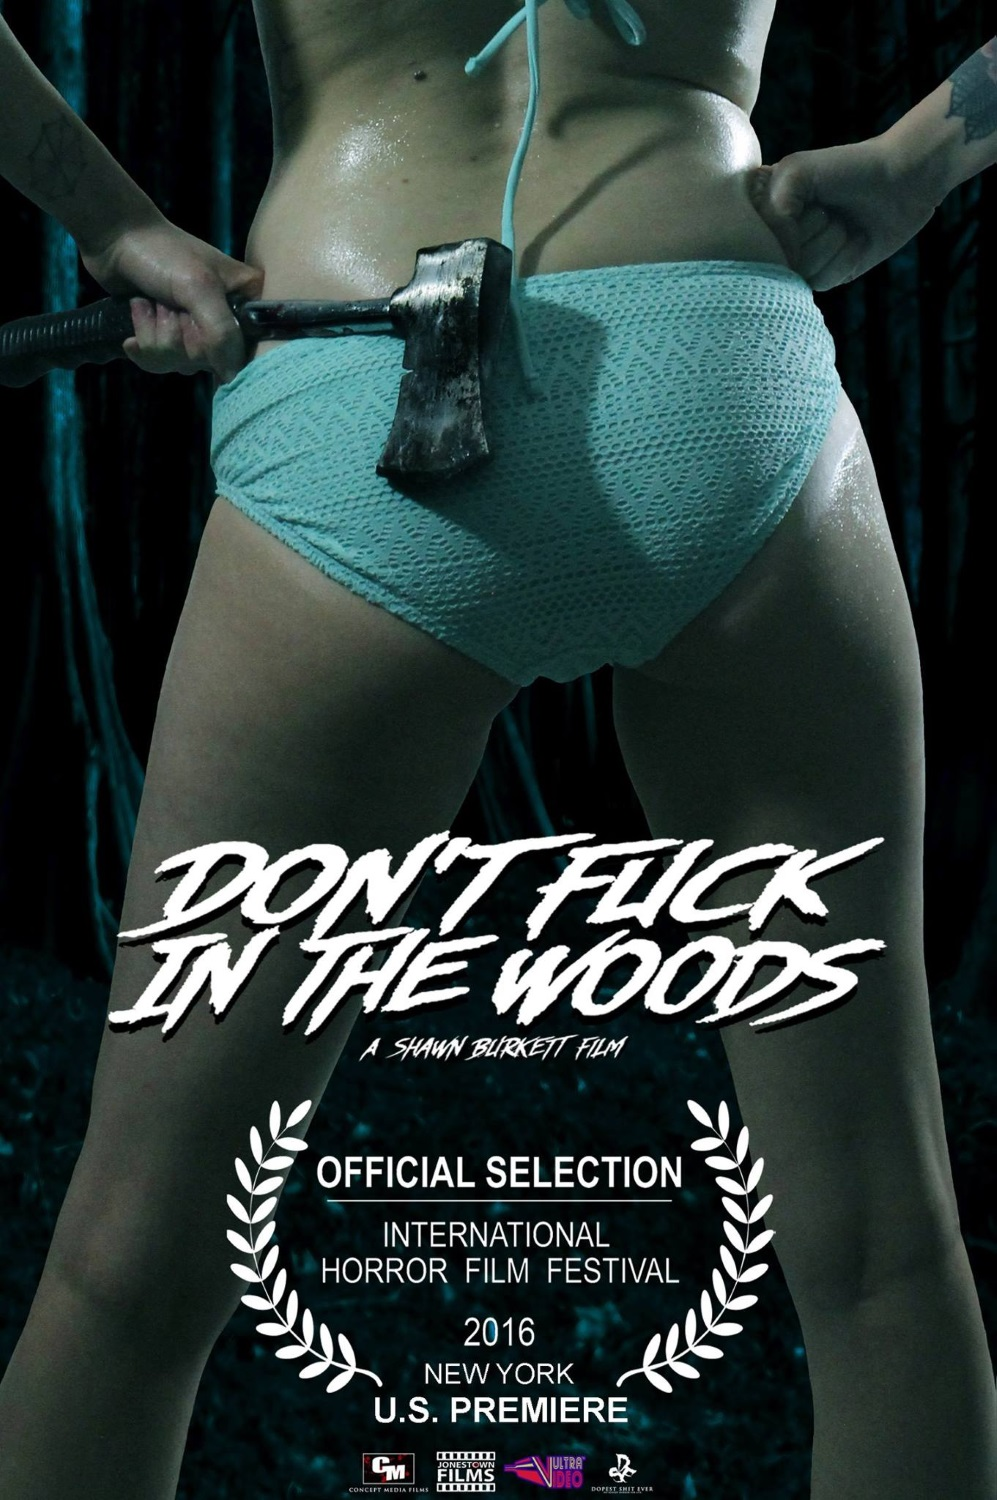 18+ Don't Fuck in the Woods (2016) English 1080p HDRip x264 ESubs